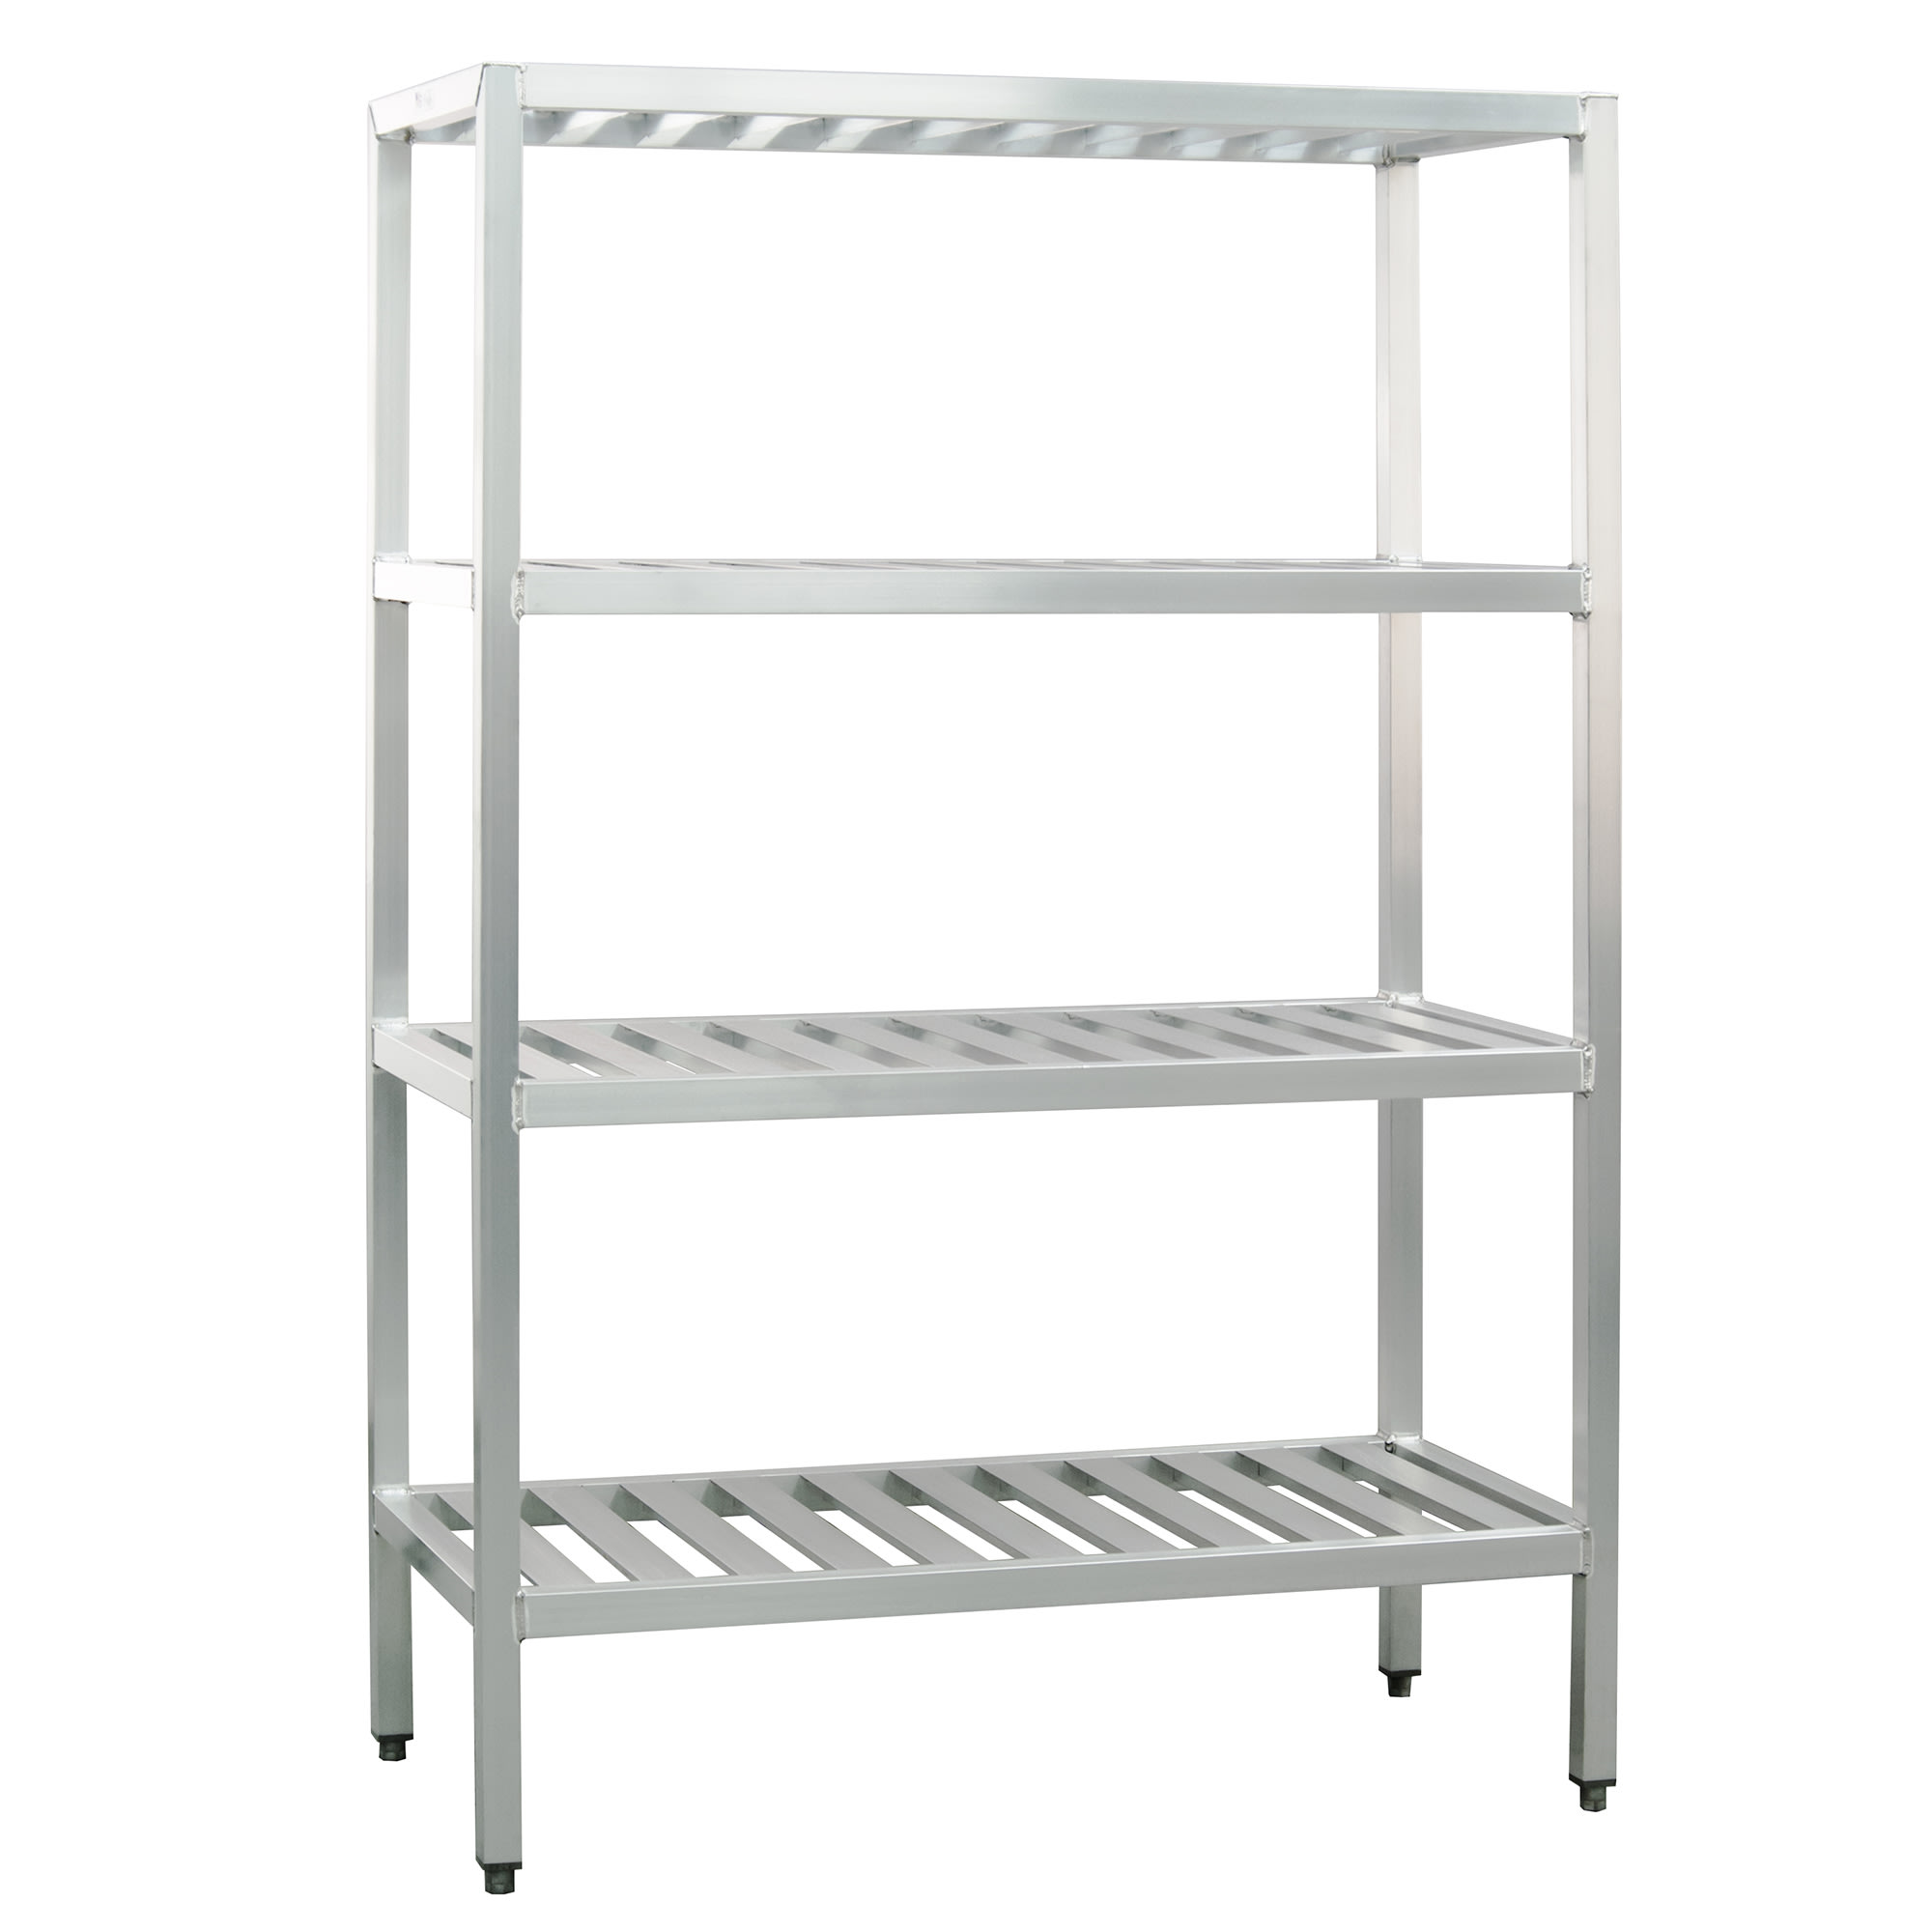 "New Age 1066TB 48"" Heavy-duty Shelving Unit w/ 1000-lb Capacity, Aluminum"